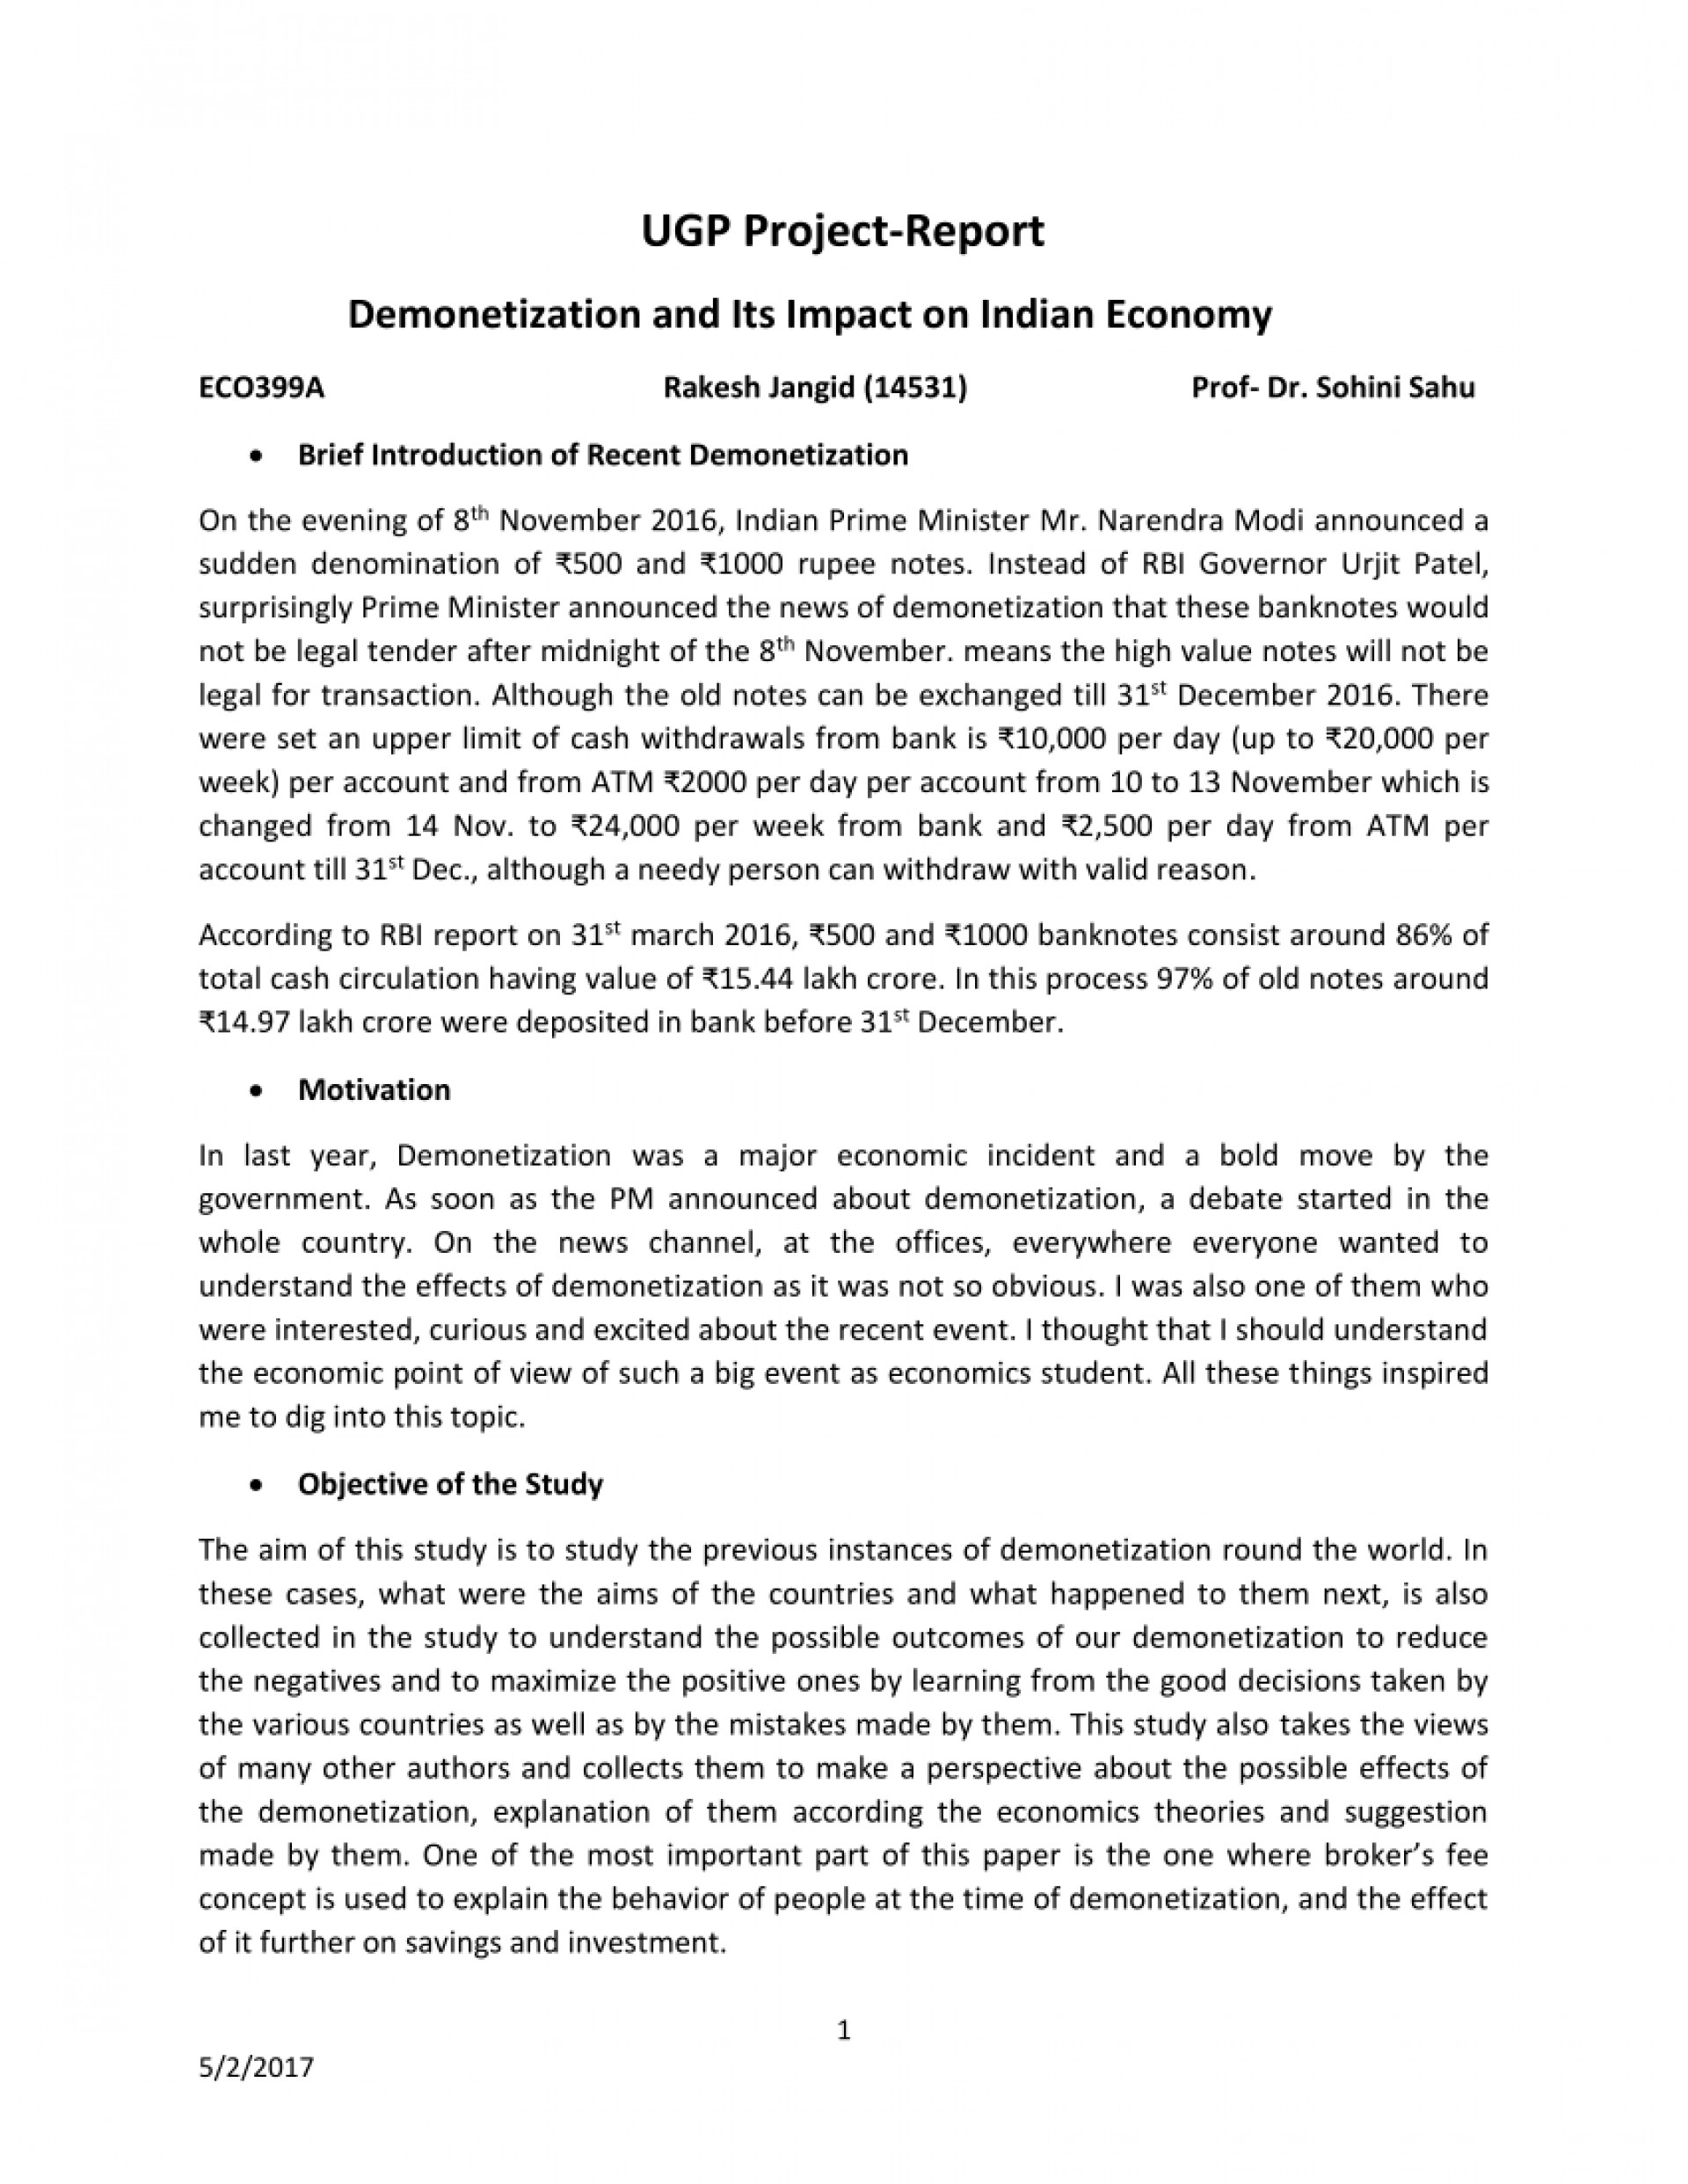 001 Research Paper Largepreview Demonetization And Its Impact On Indian Frightening Economy 1920